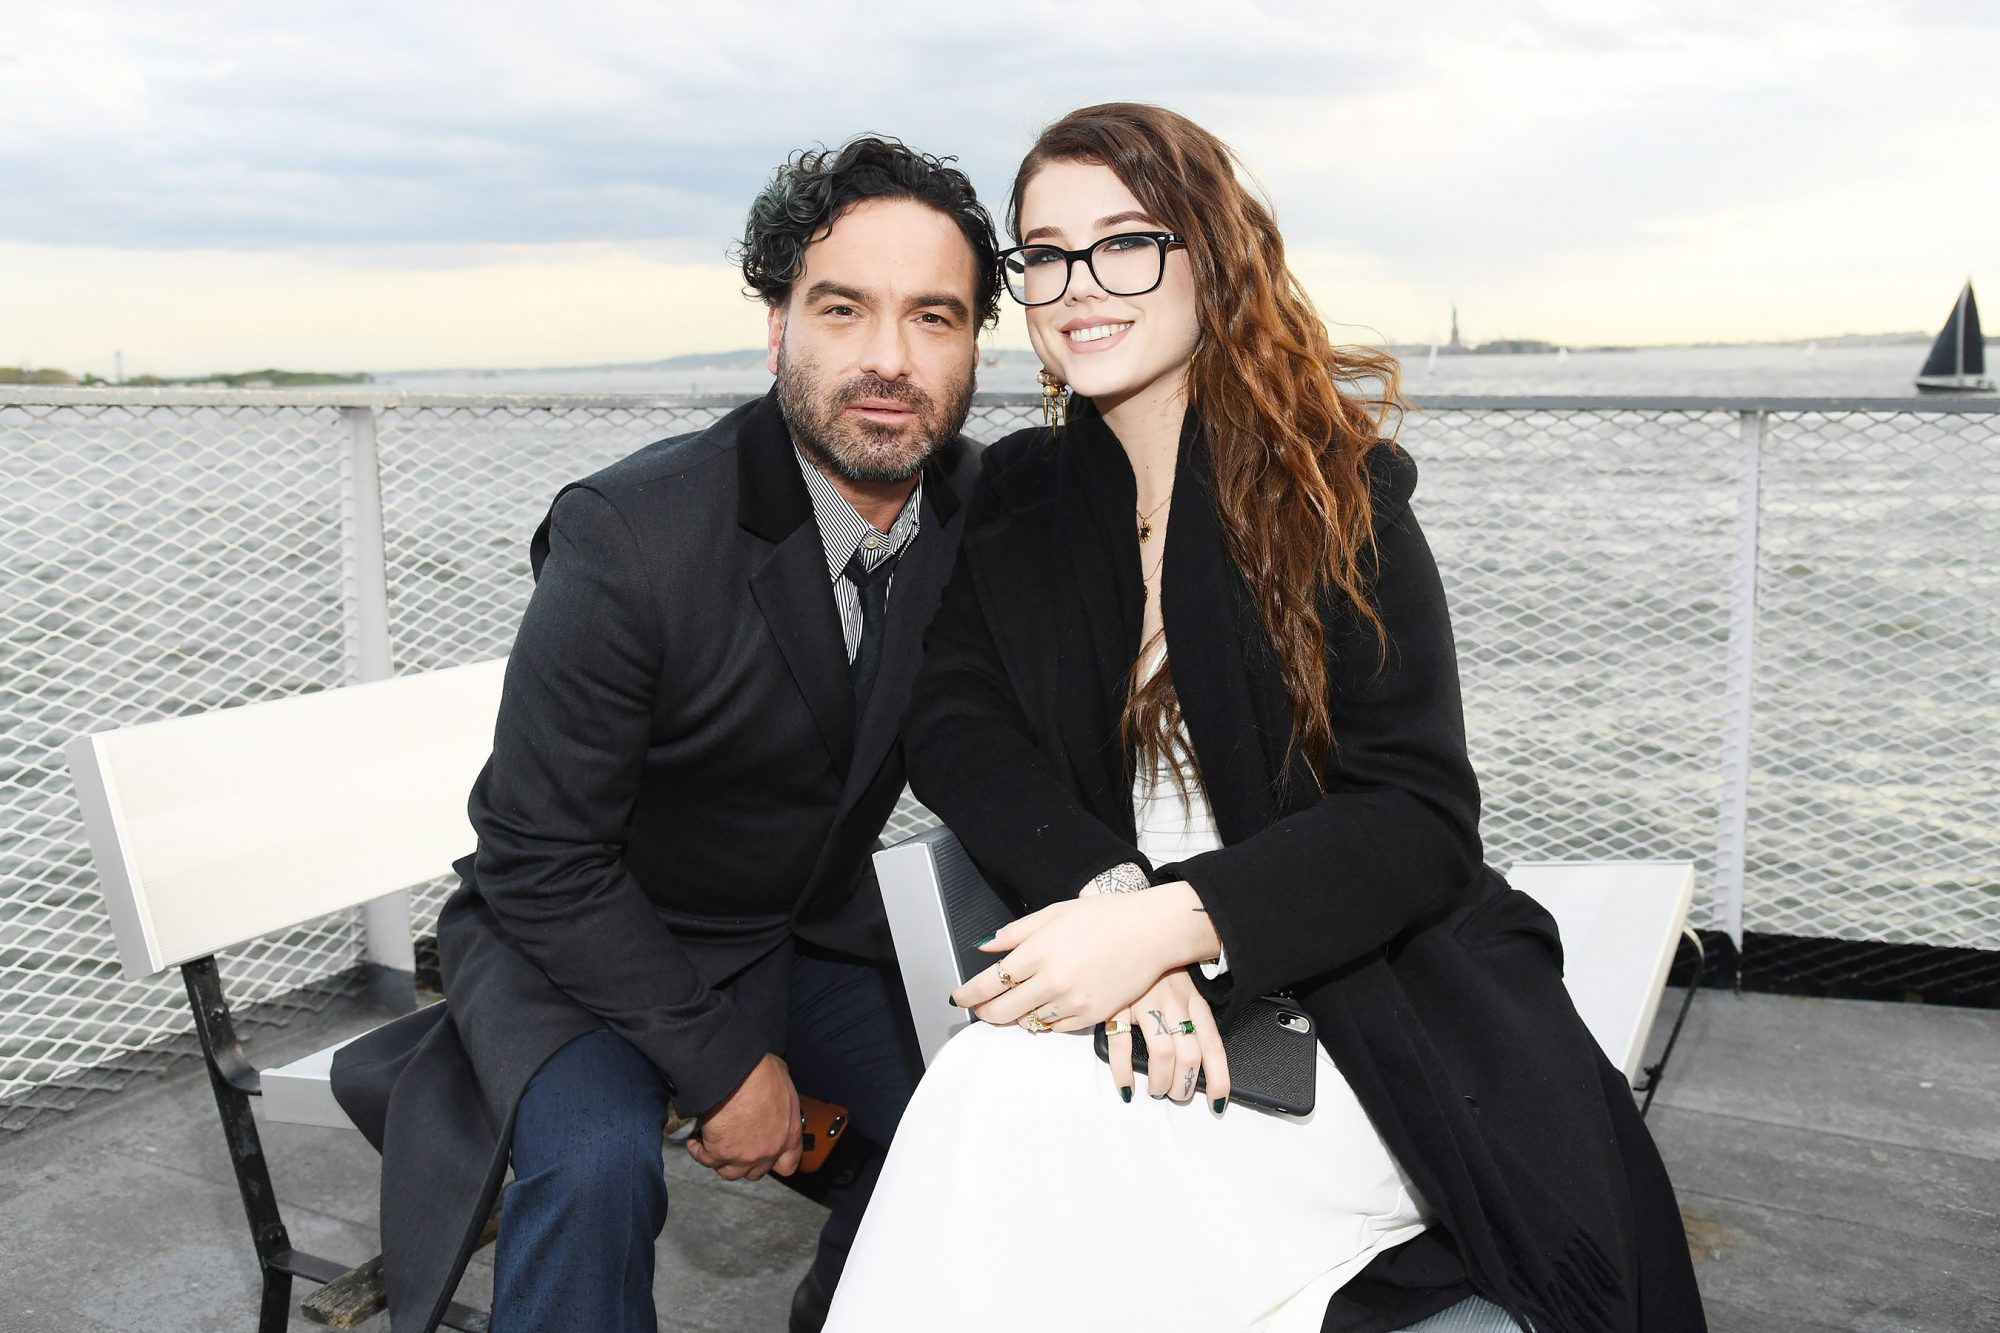 The Big Bang Theory alum and Meyer have split.                             A source told PEOPLE on Nov. 30 that the two have gone their separate ways and are co-parenting their son Avery, who will turn 1 next month.                             Galecki, 45, and Meyer, 23, started dating in 2018. They announced Avery's arrivalin December 2019.